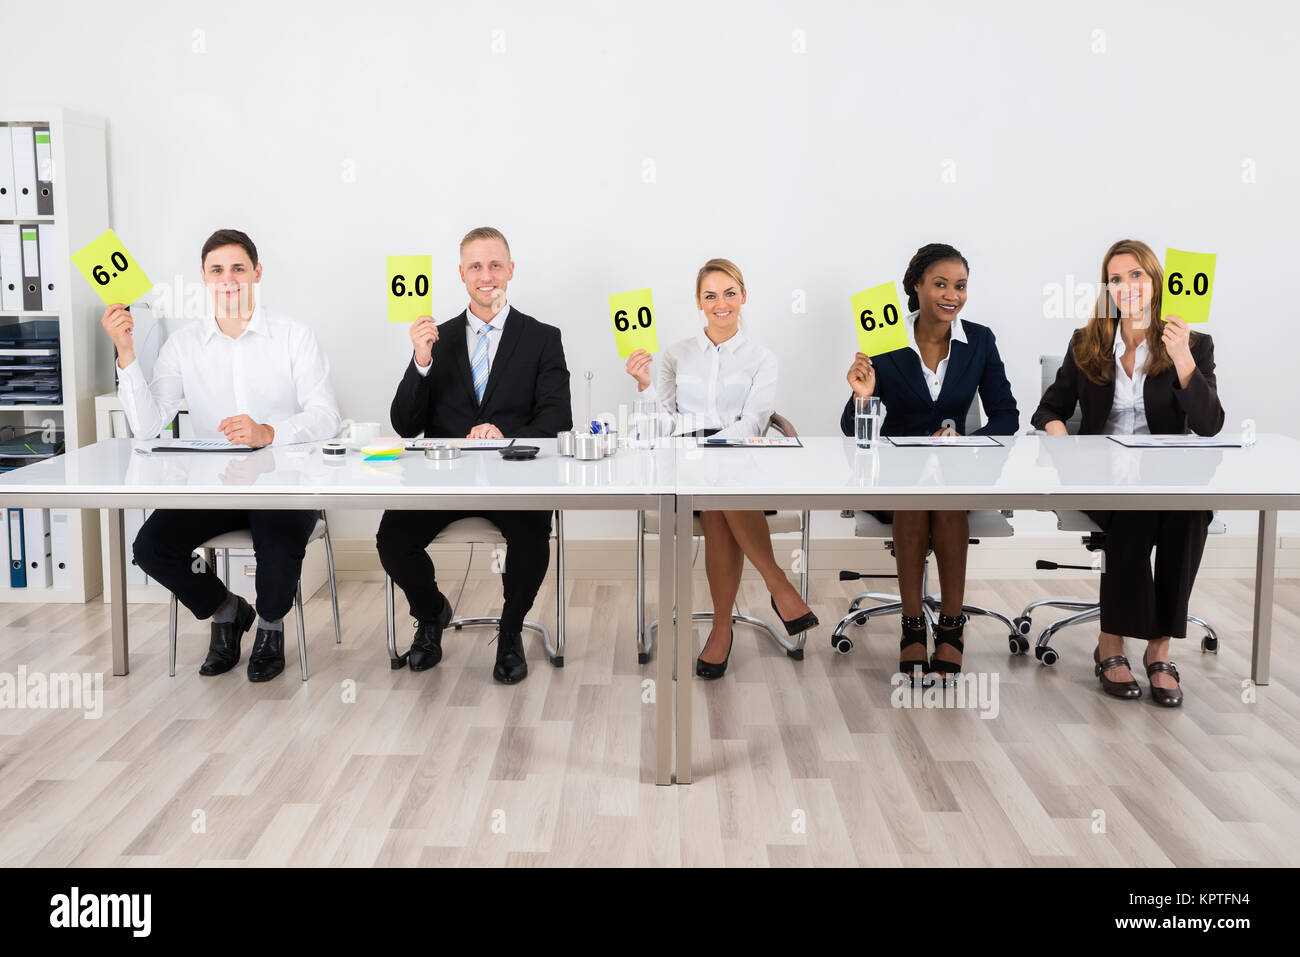 Businesspeople Holding Voting Paper - Stock Image